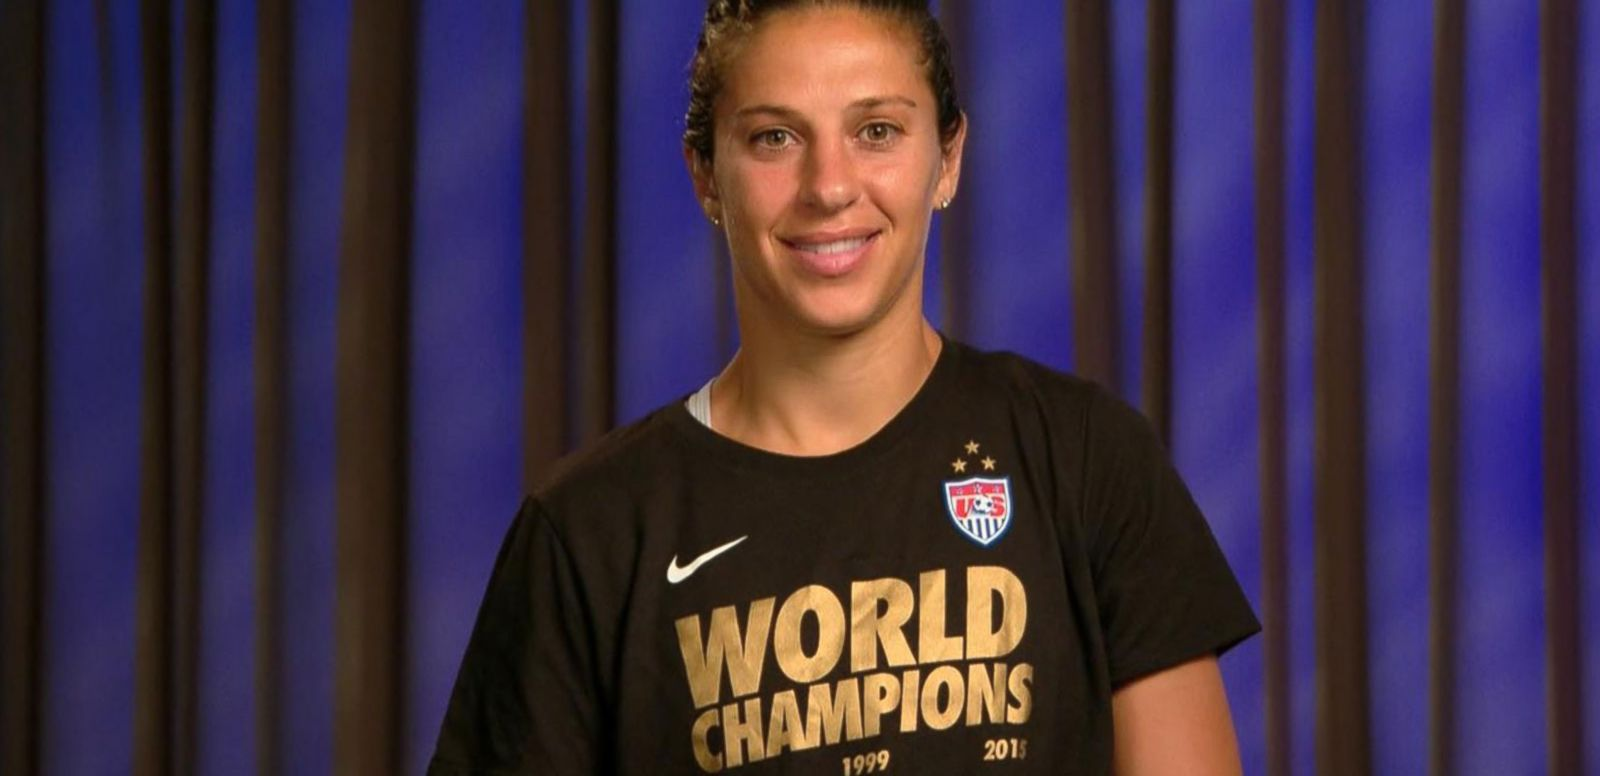 VIDEO: USA Women's Soccer Star Carli Lloyd on World Cup Win